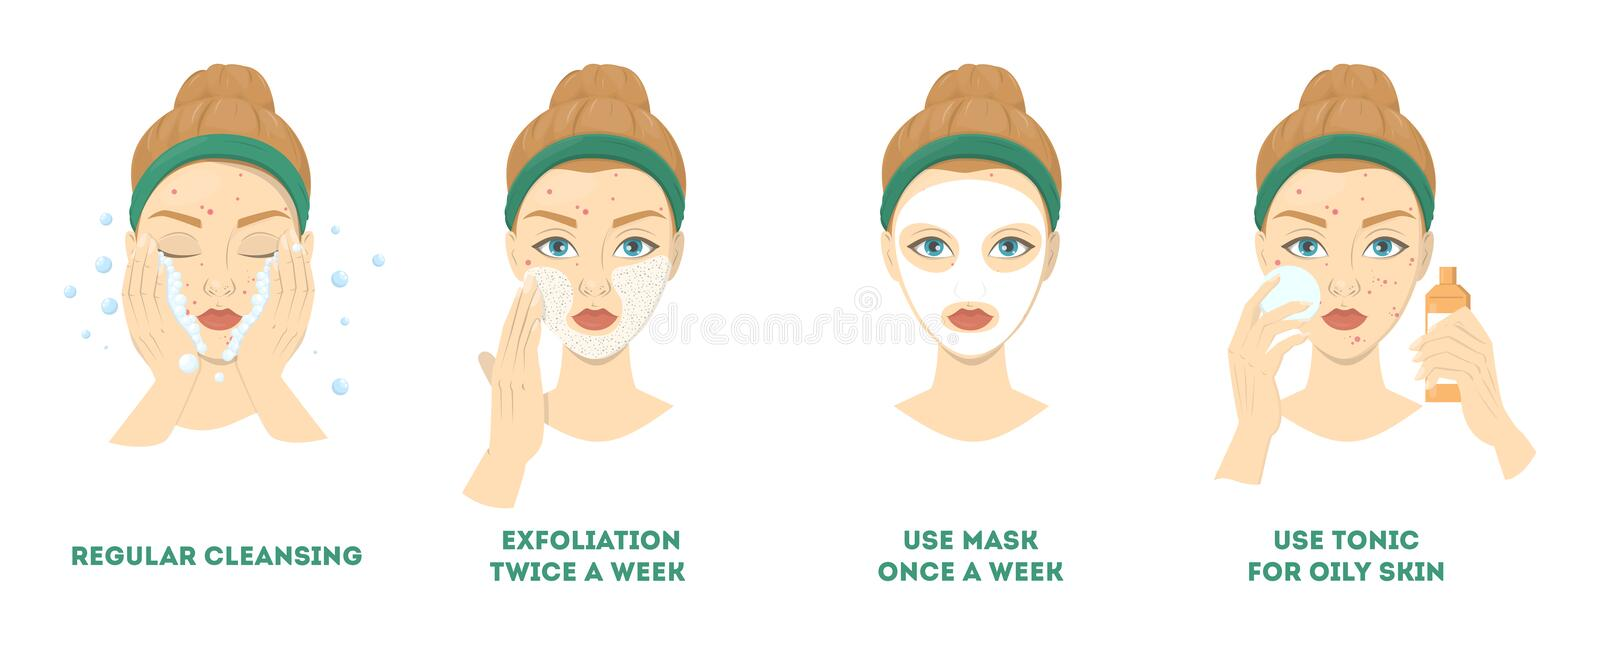 Face cleansing and care steps for acne treatment vector illustration